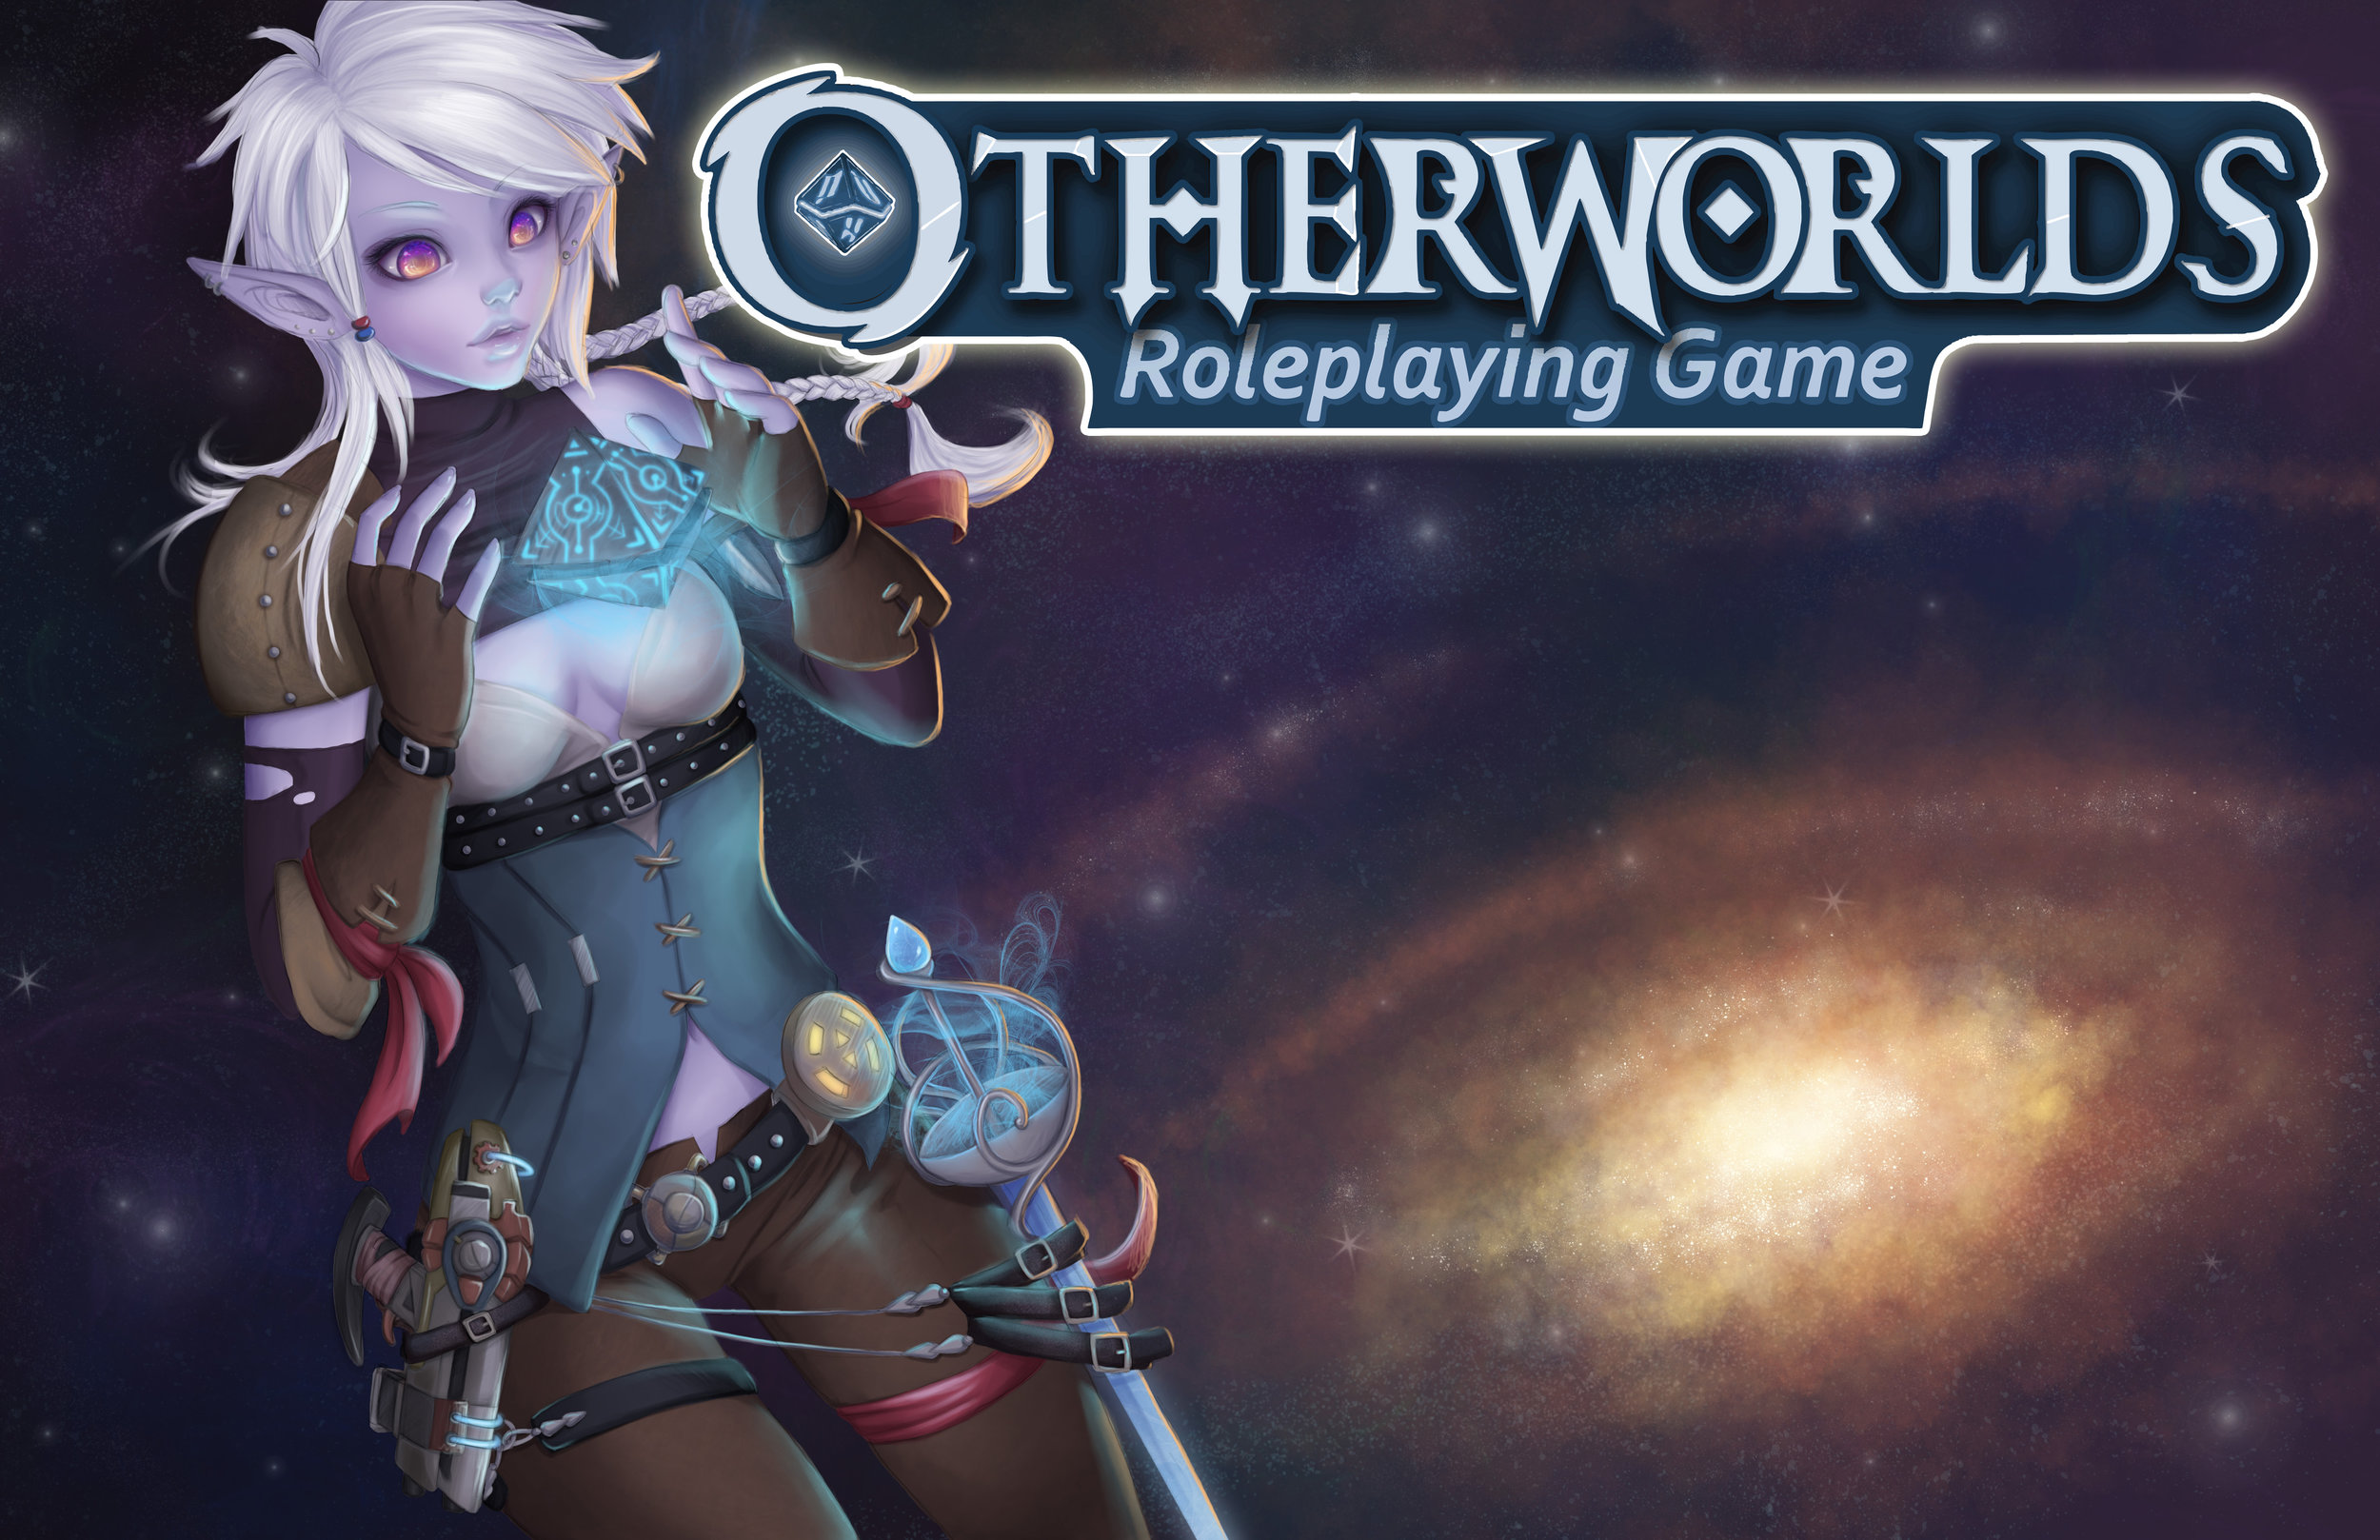 Otherworlds Adventure Tabletop RPG Roleplaying Game Character Creation Update